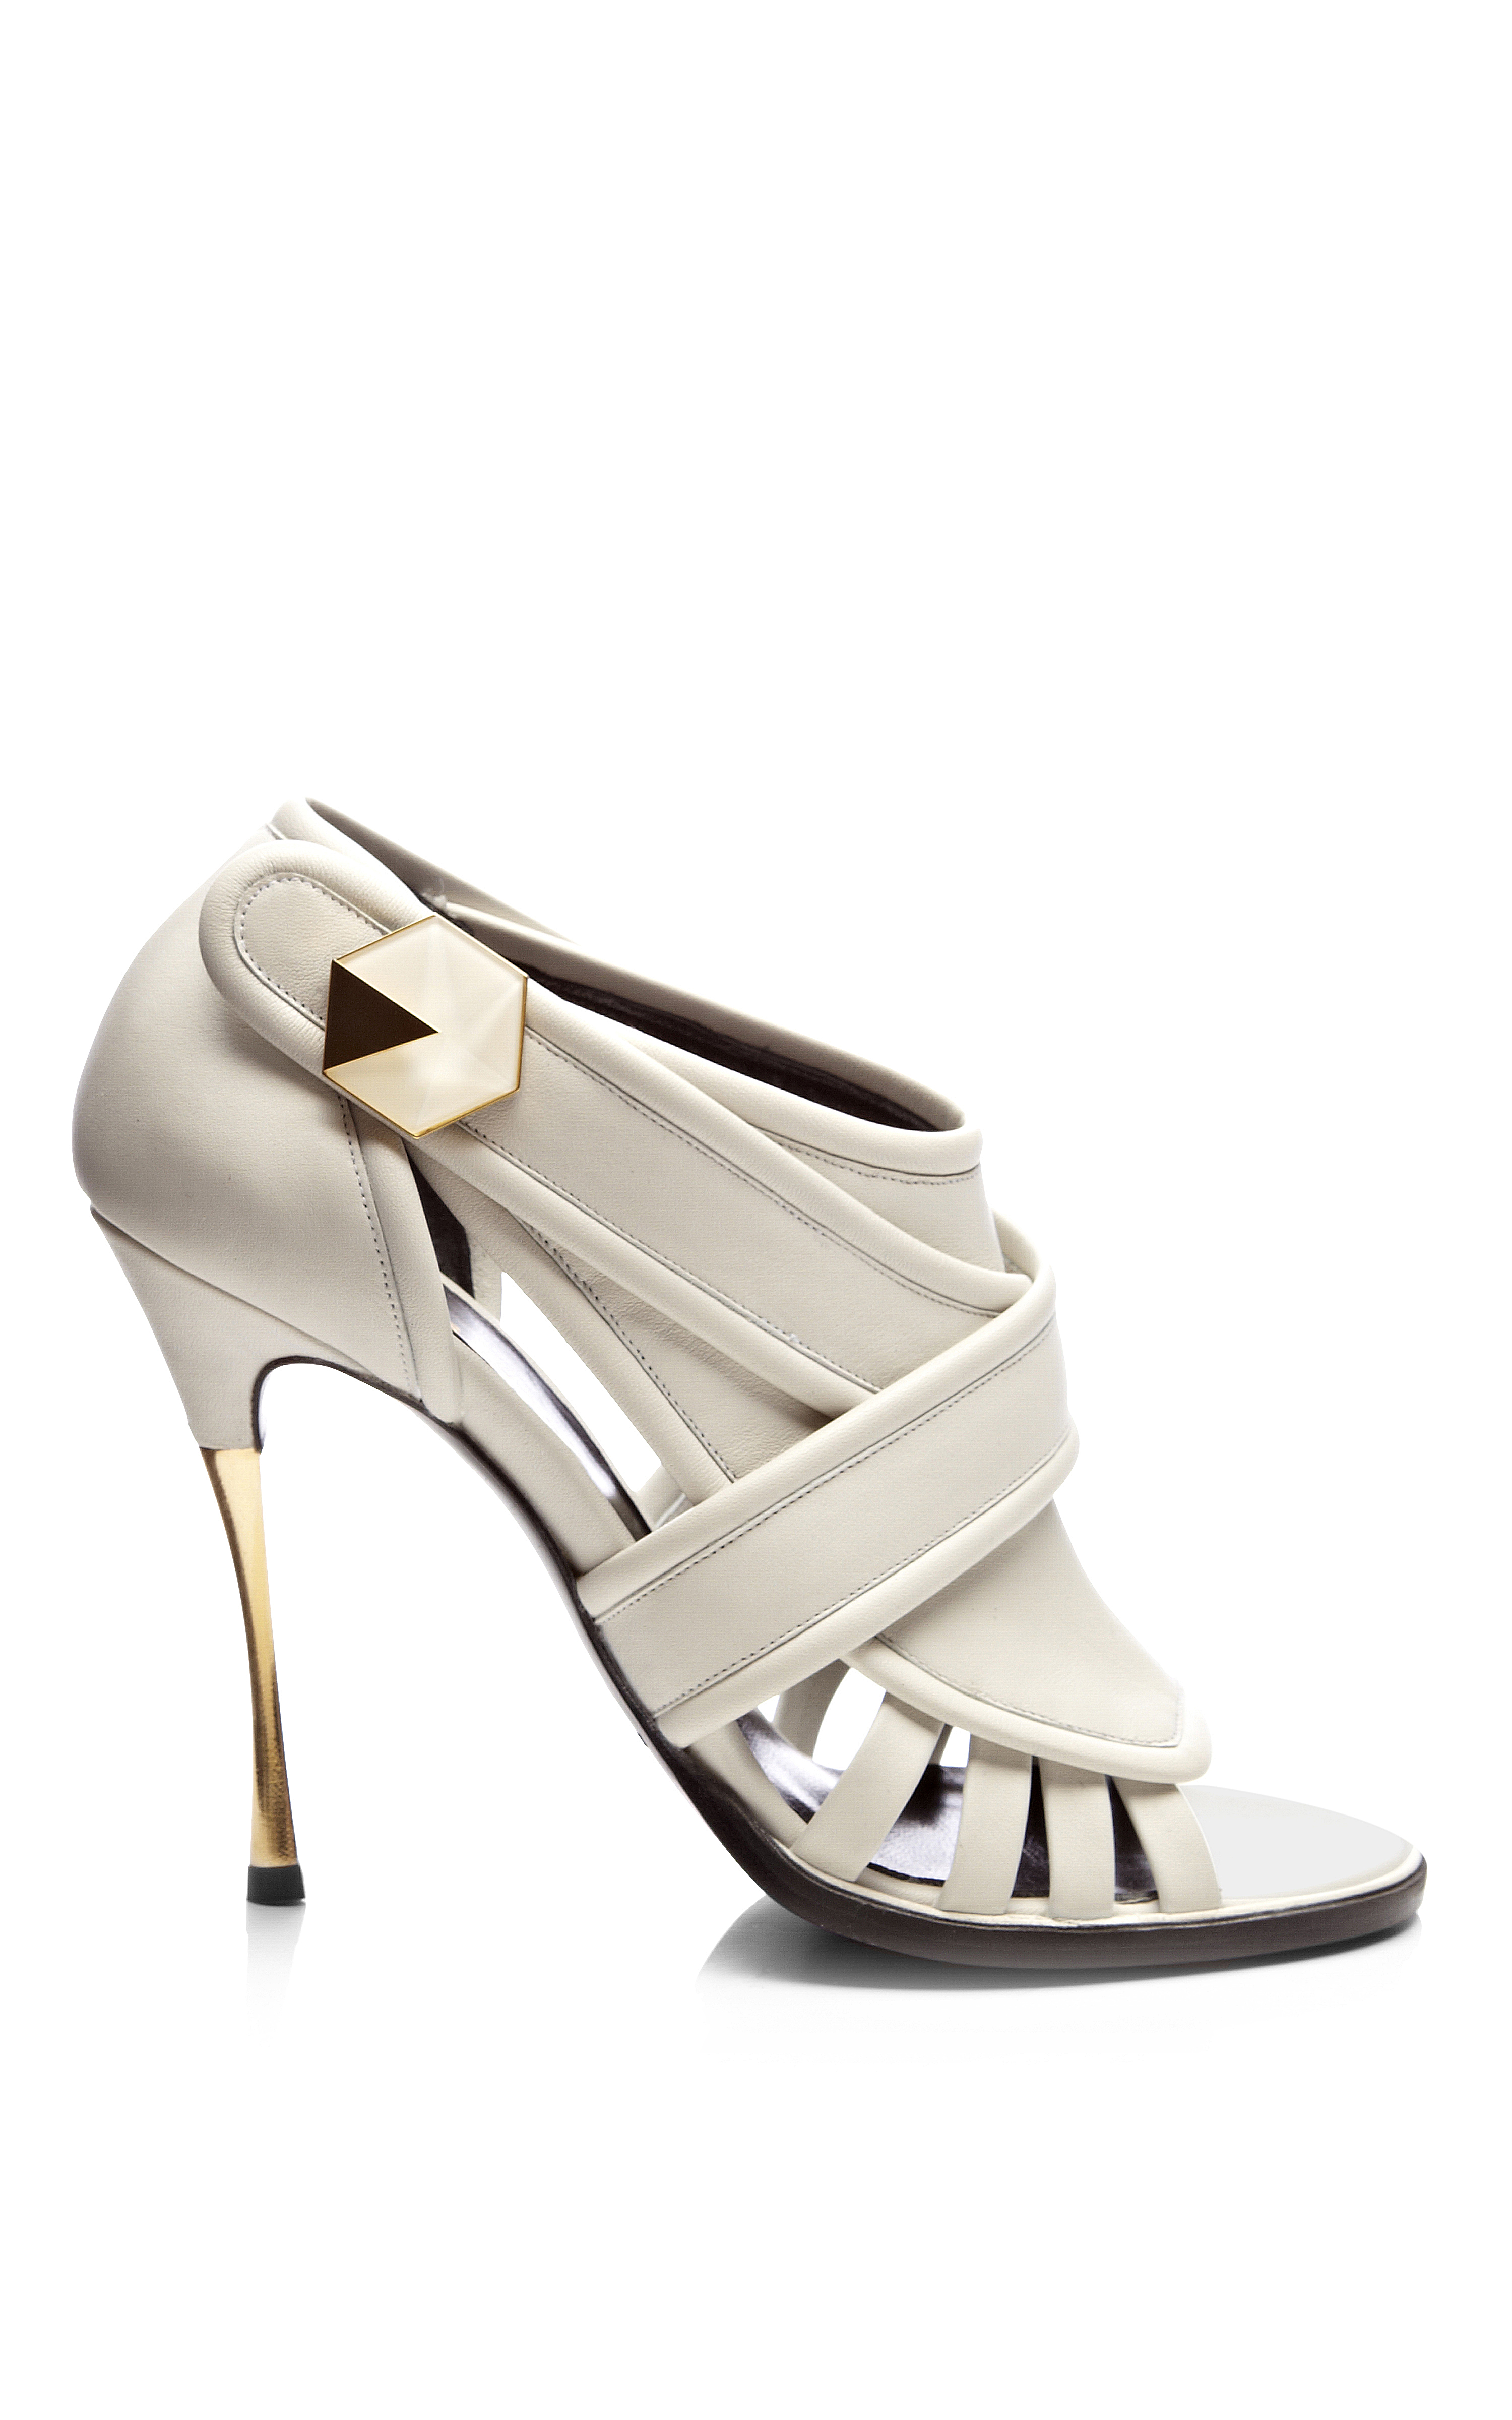 for sale cheap online cheap price from china Nicholas Kirkwood Metallic Cage Sandals cheap sale discount recommend xX3W3